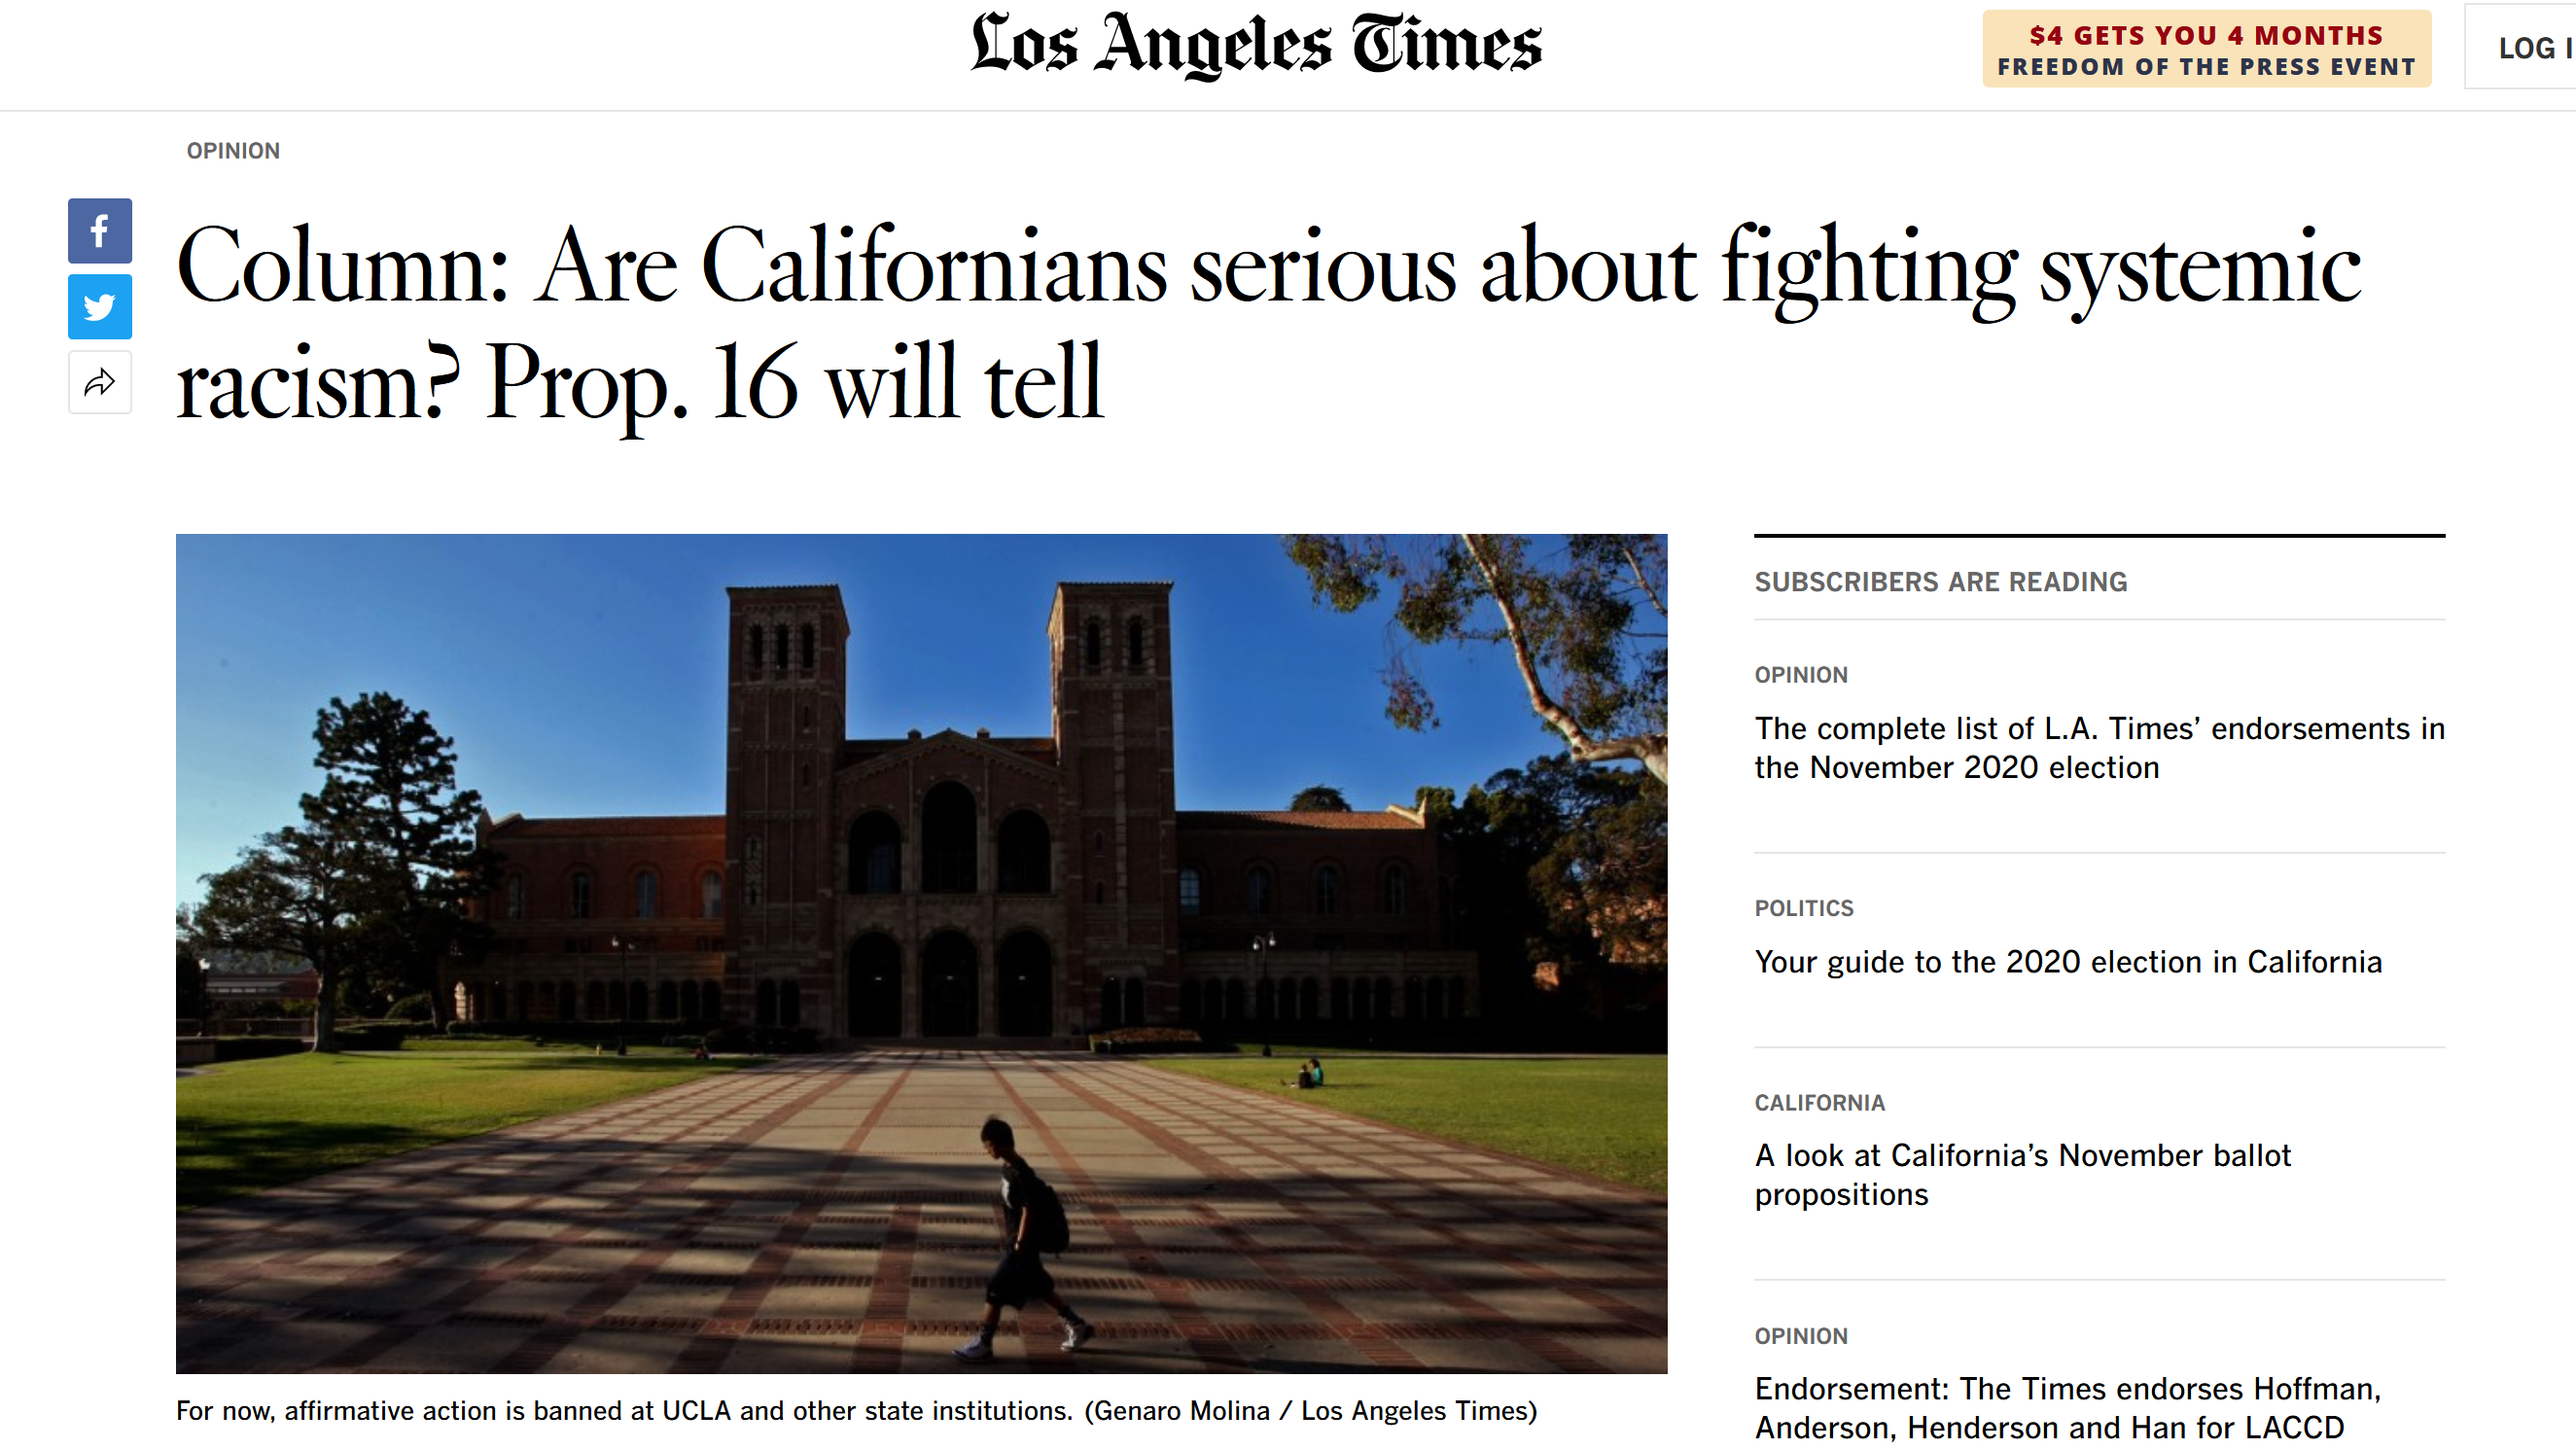 LA Times: Are Californians Serious about fighting systemic racism?